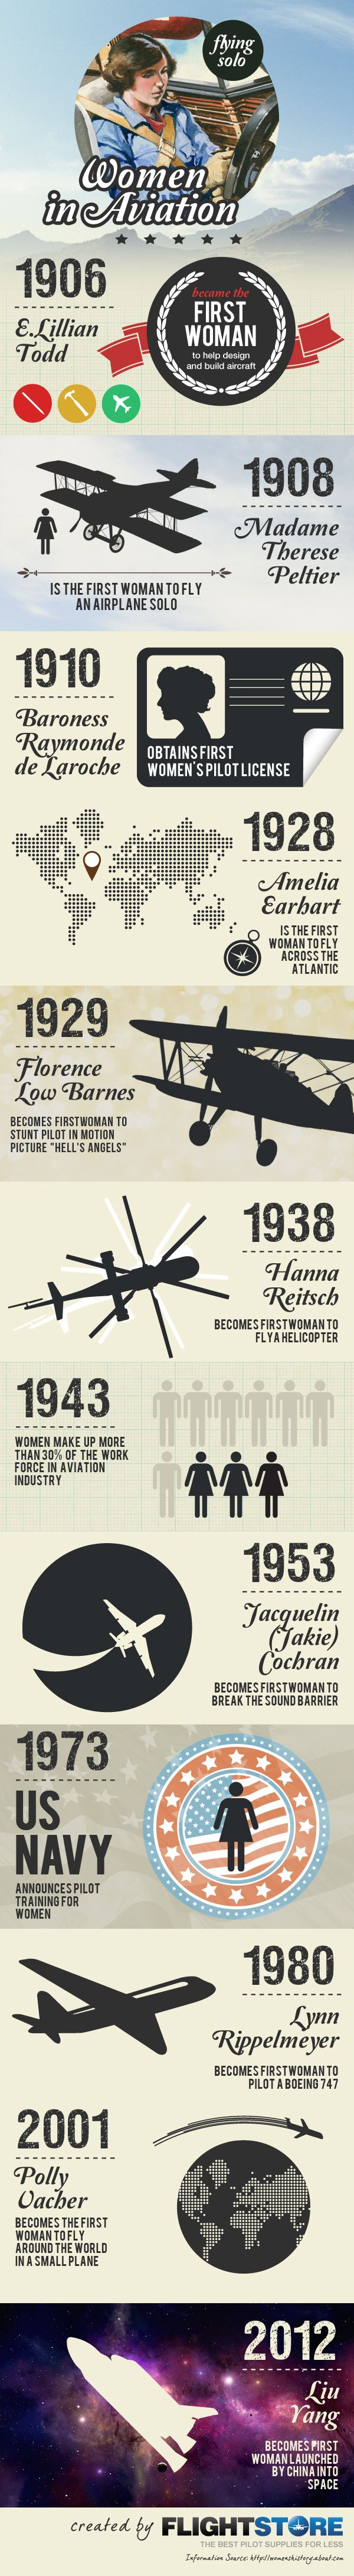 With more and more women taking to the cockpit we have looked at some of the key moments for women in aviation. From Amelia Earhart to Liu Yang, this infographic shows that when it comes to aircraft, it is definitely not just a man's world. #STEM #aviation